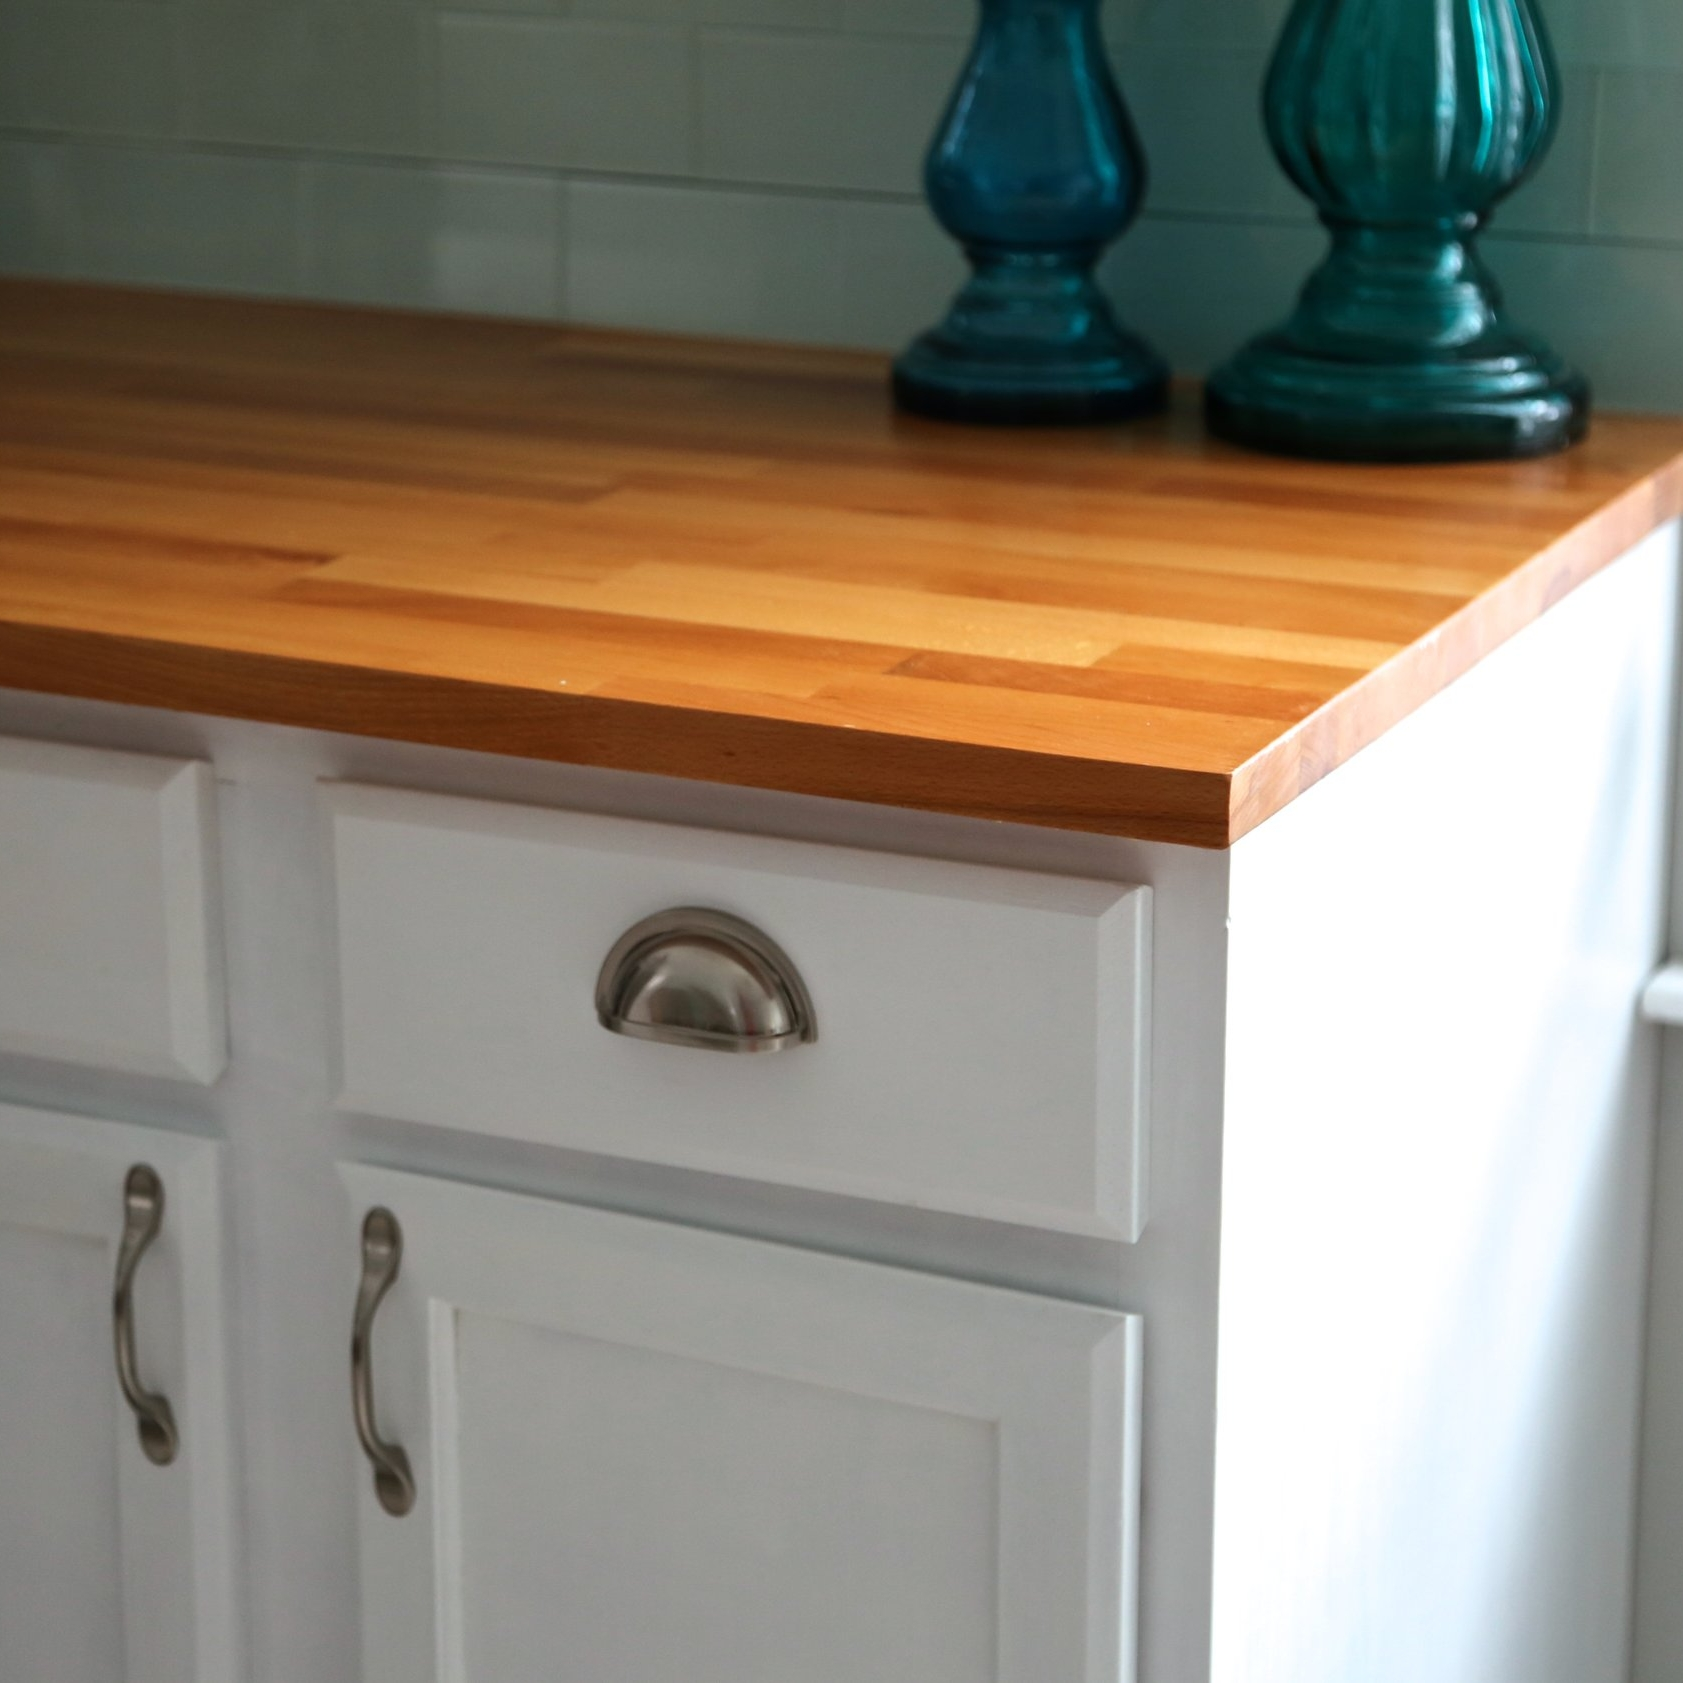 Genial How To Install Ikea Butcher Block Countertops